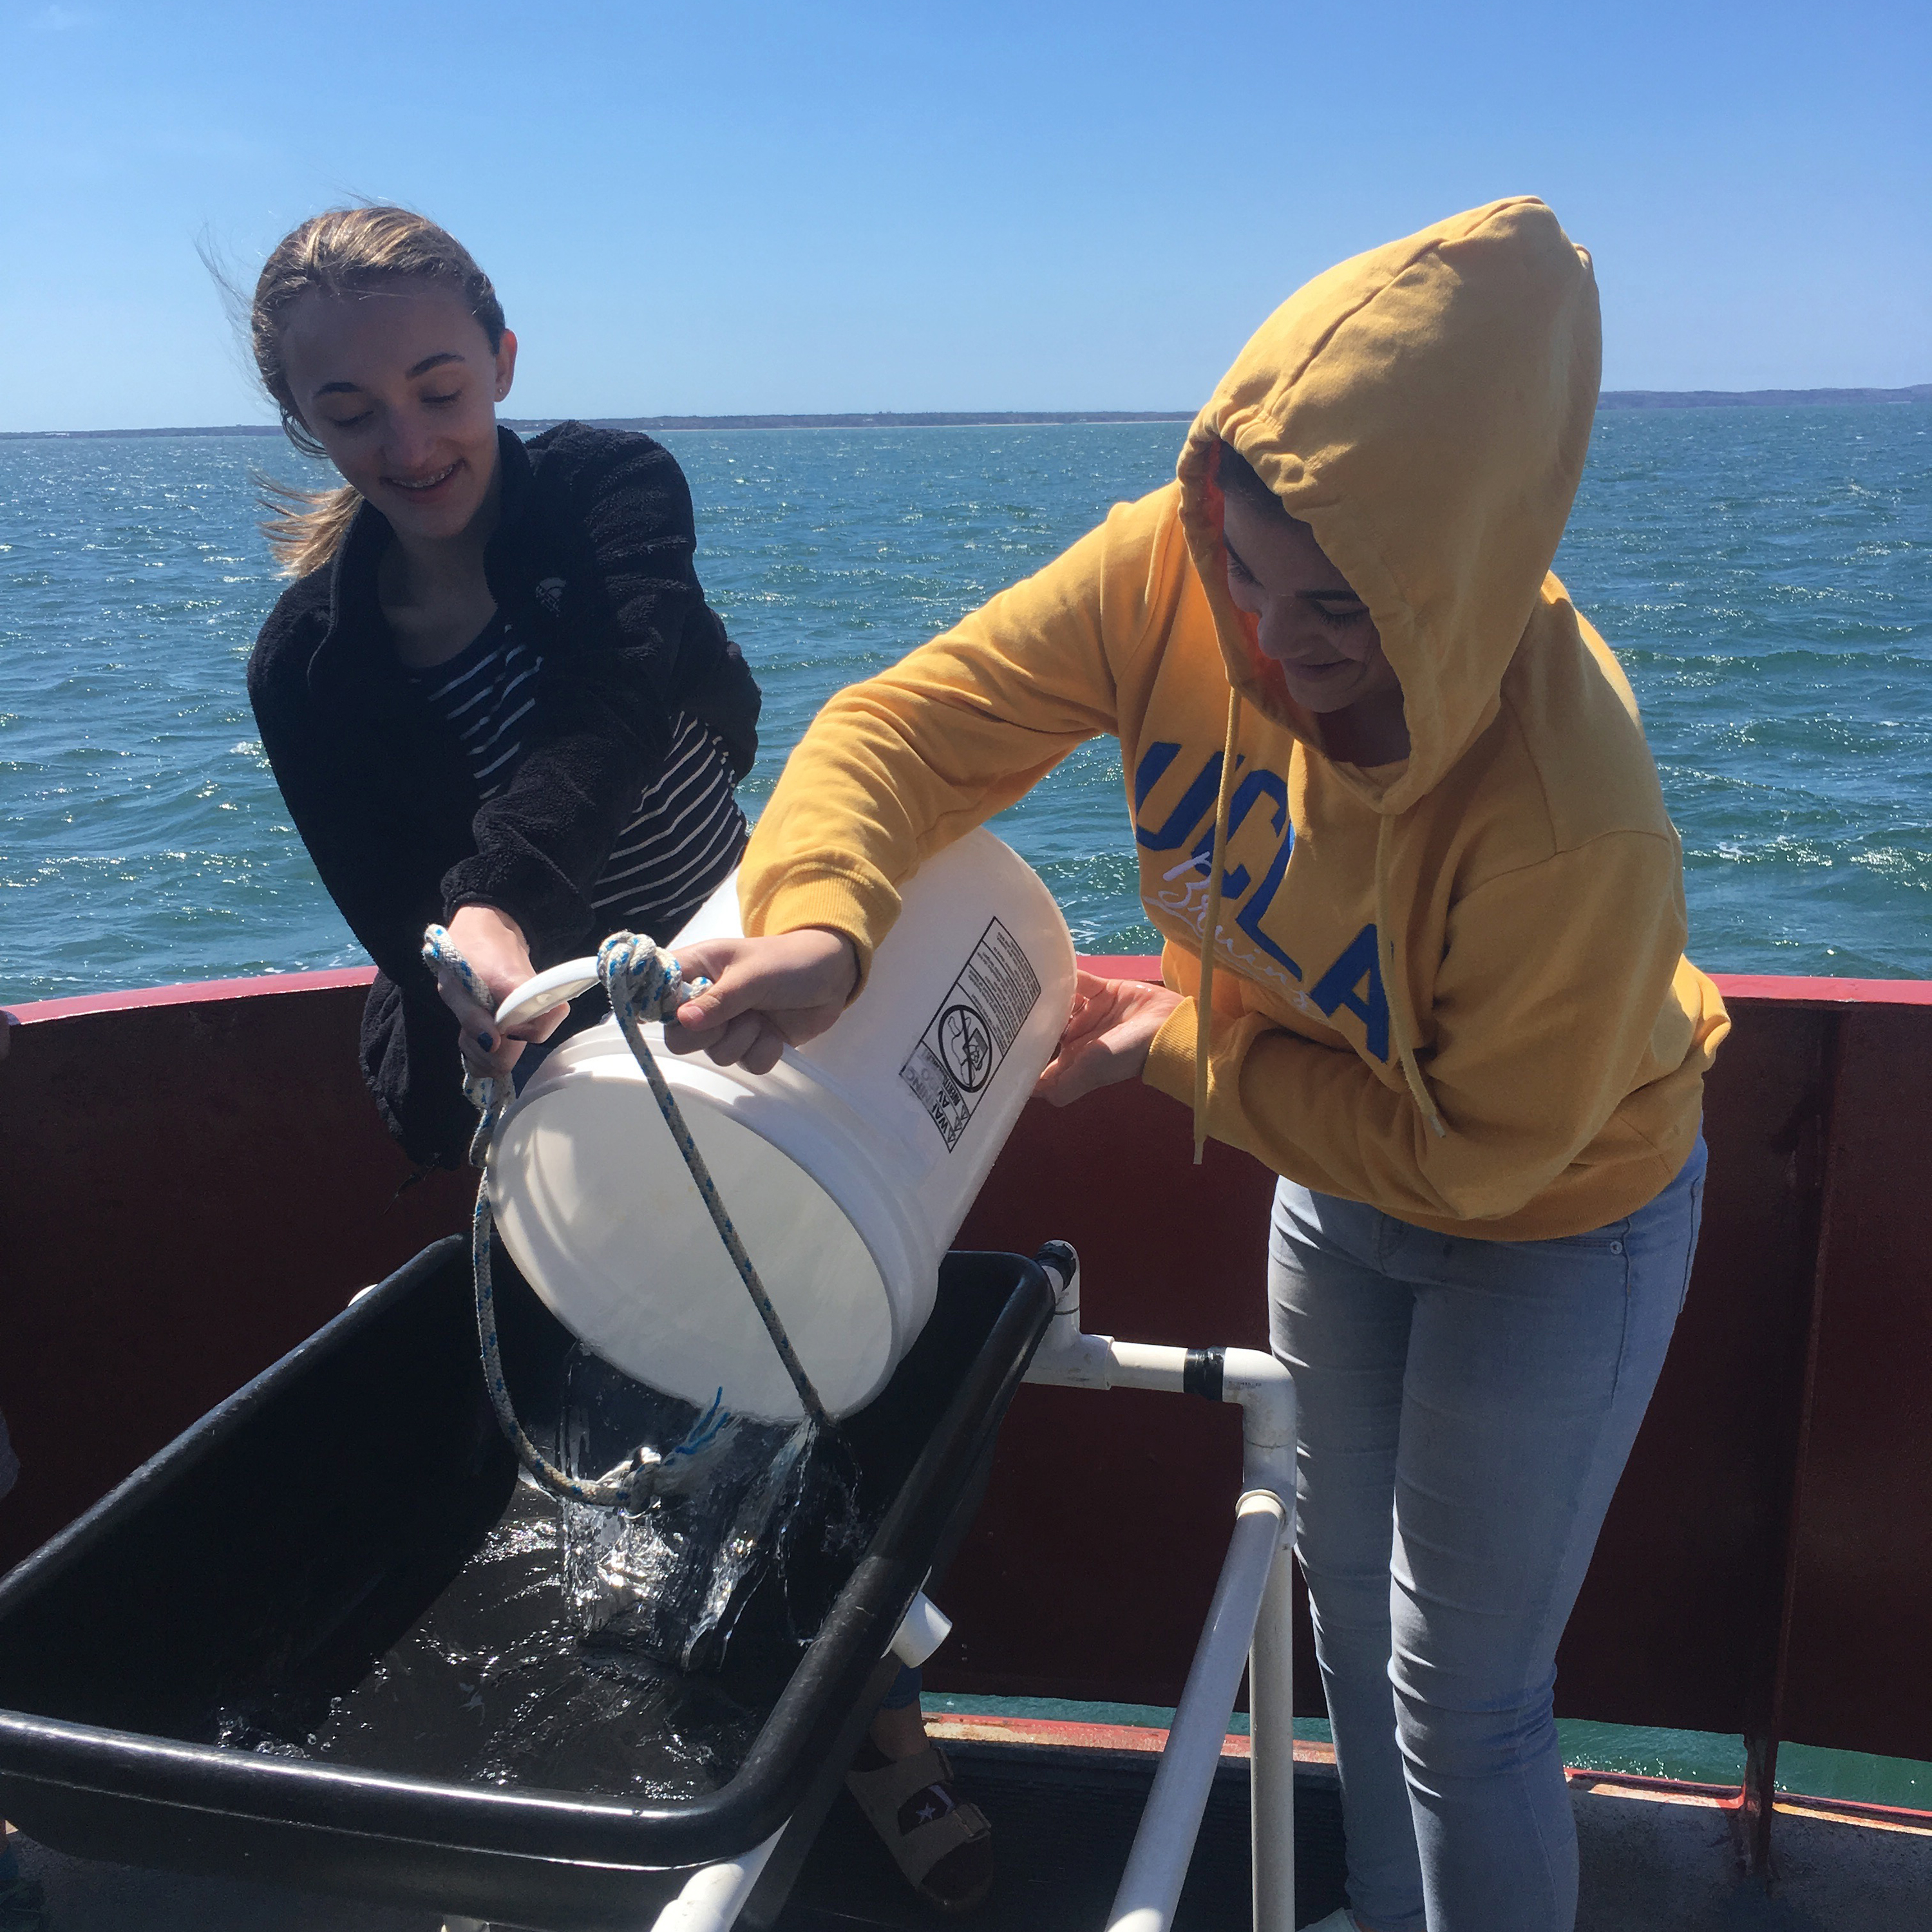 Earthwatch's Girls in Science fellows have built and deployed underwater microphones and analyzed dolphin acoustic data with sophisticated sonic software—helping scientists from Woods Hole Oceanographic Institution better understand marine mammals and prevent mass strandings in Cape Cod, Massachusetts.